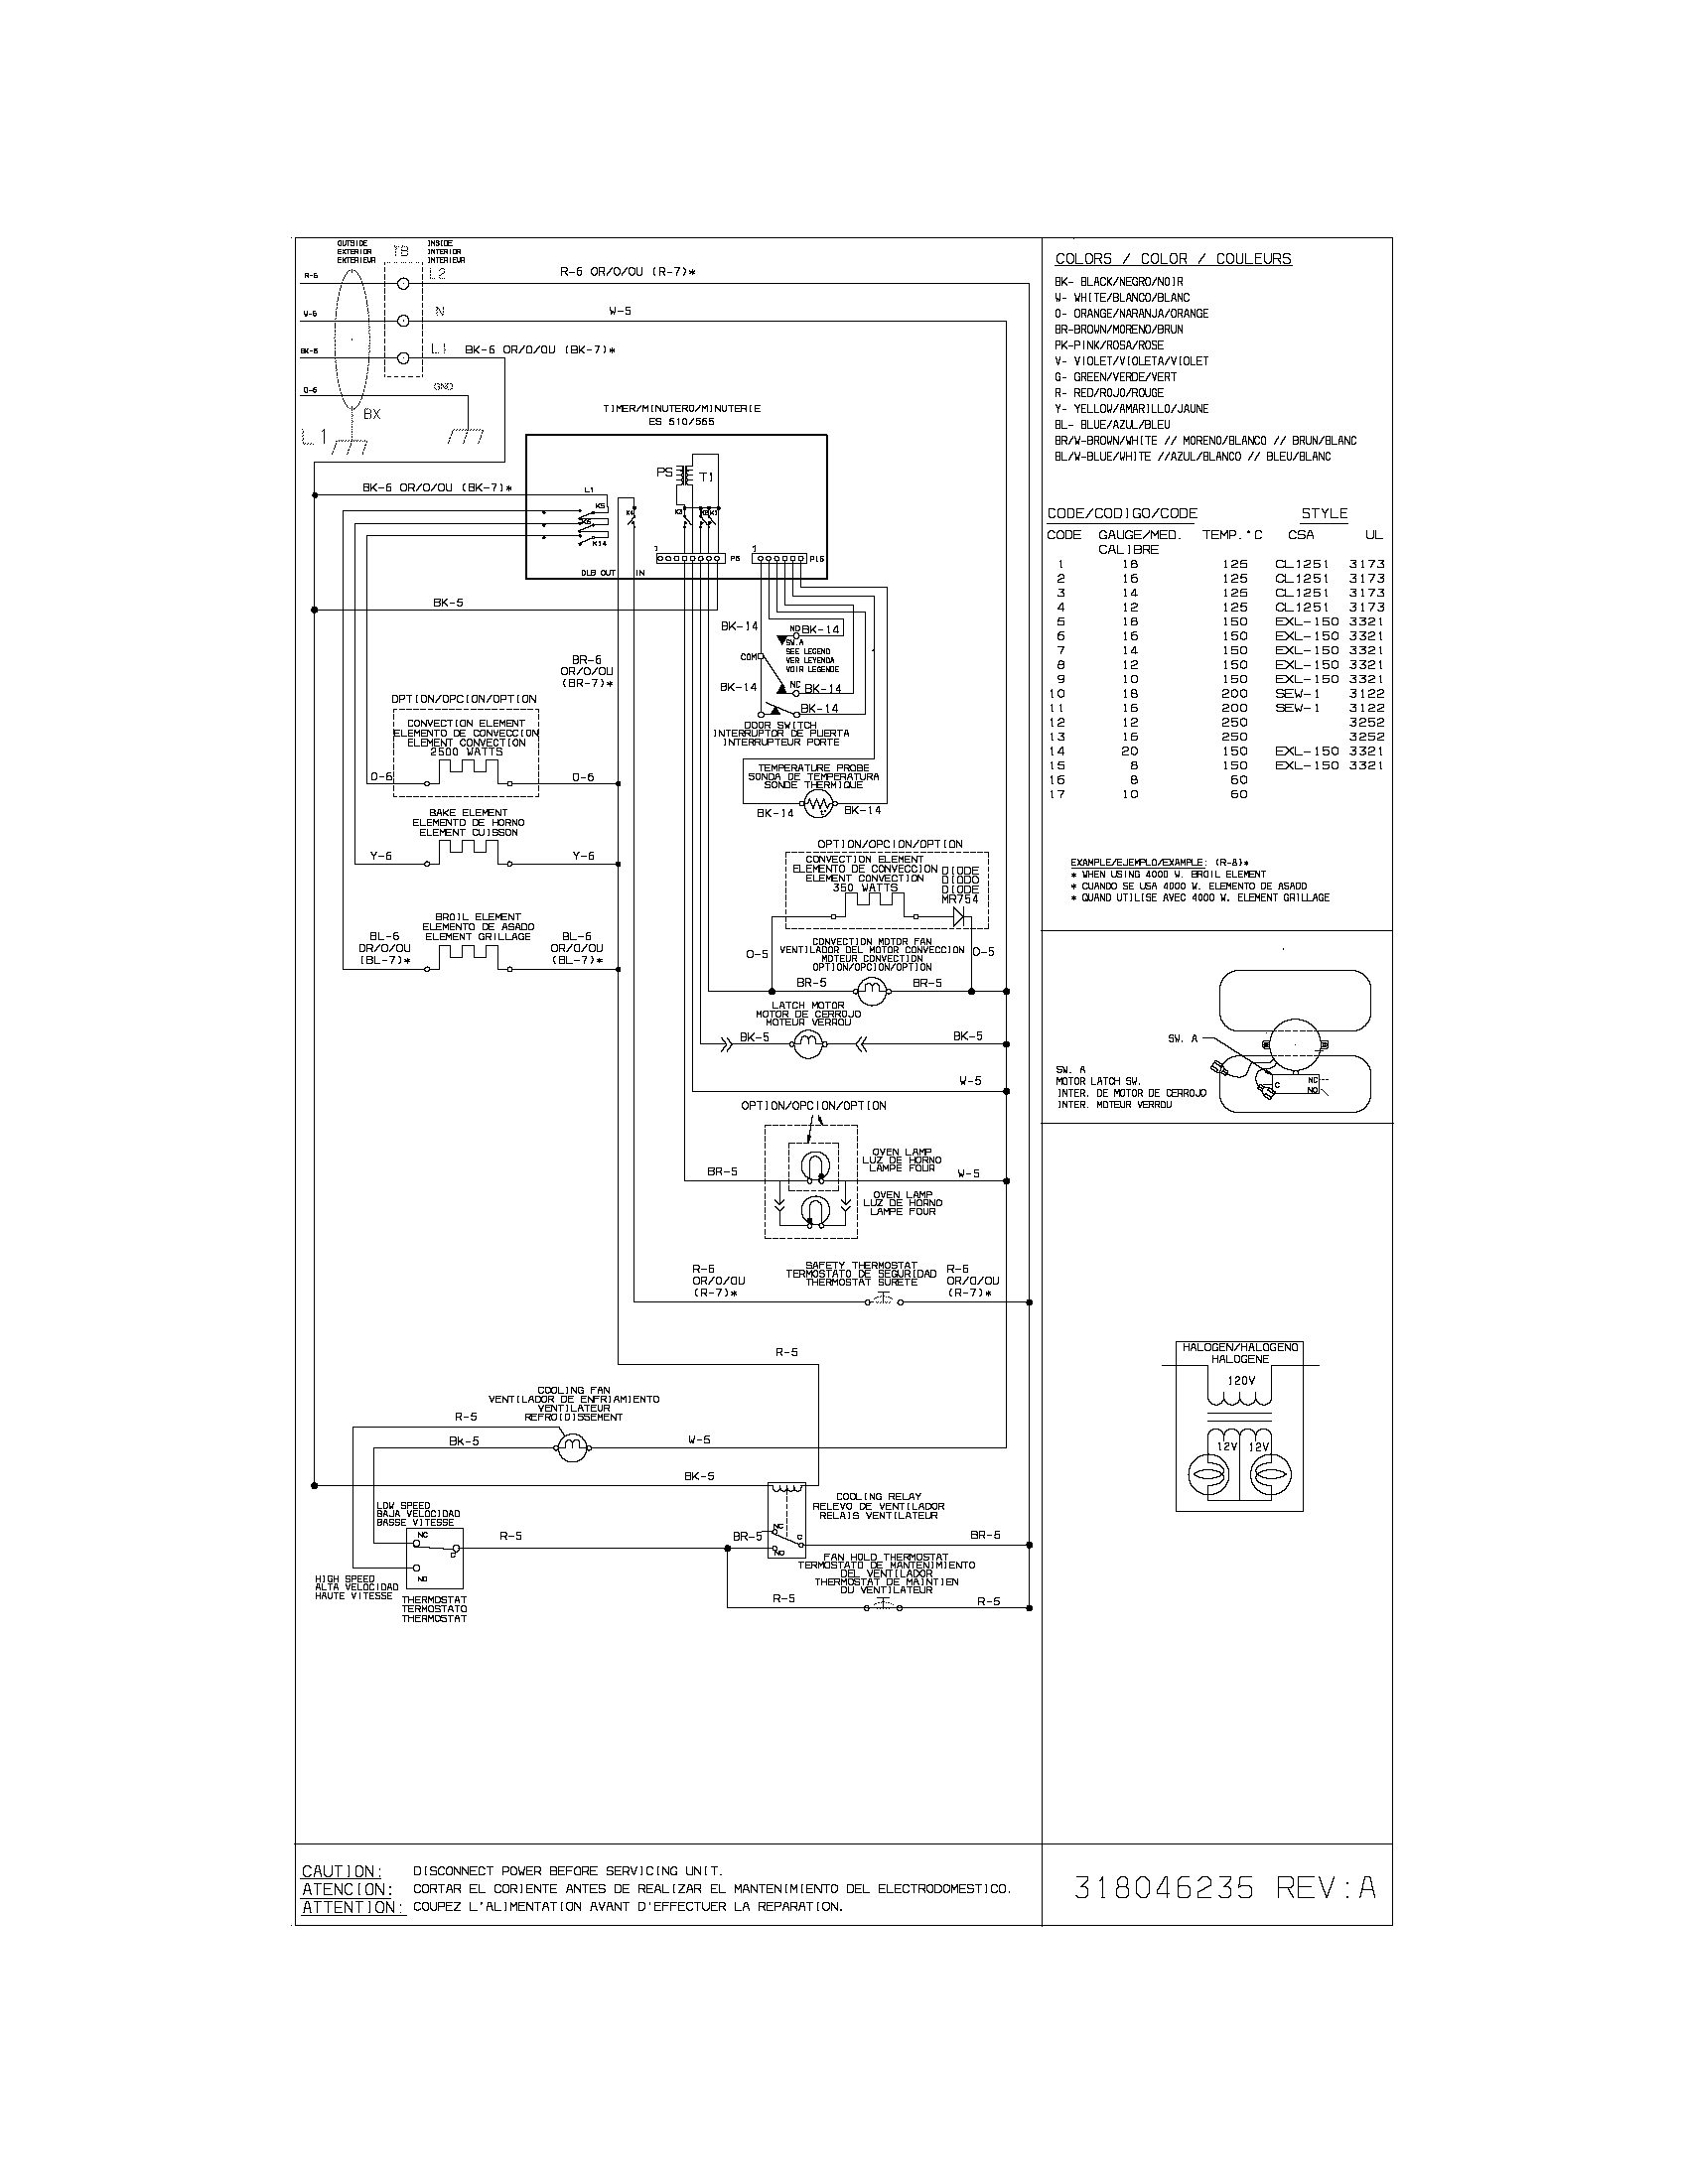 wiring diagram for frigidaire wall oven wiring diagrams frigidaire gallery wall oven wiring diagram frigidaire oven wiring diagram [ 1700 x 2200 Pixel ]